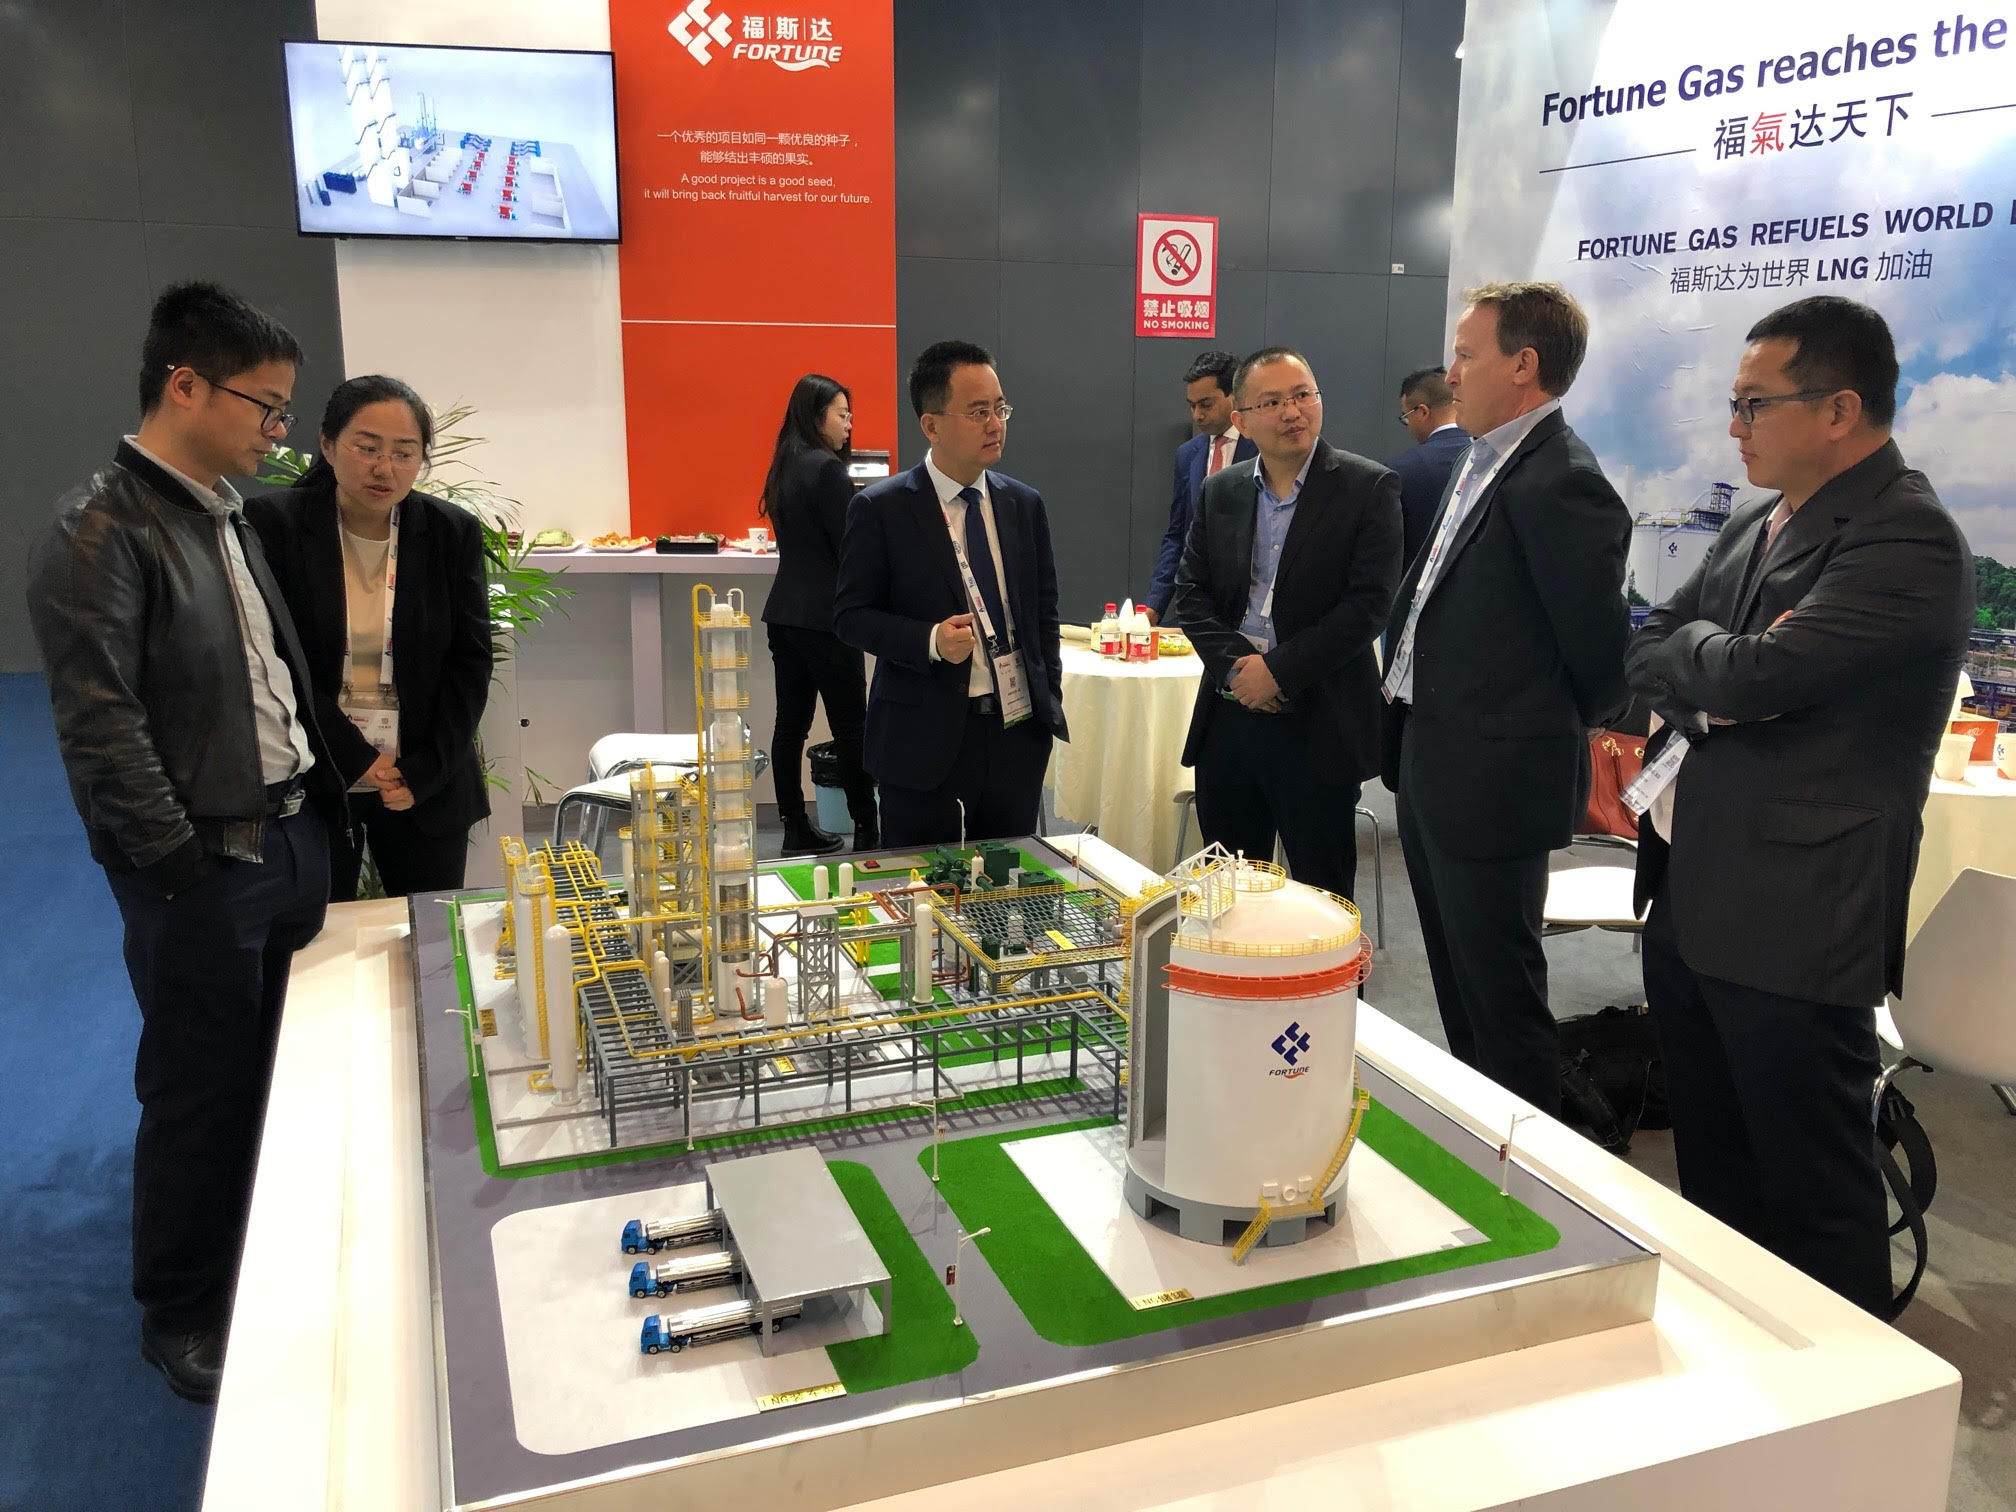 Managing Director Bruce Marriott and Chairman and majority shareholder Yuzheng Xie at the world's largest LNG conference, LNG 19 in Shanghai.